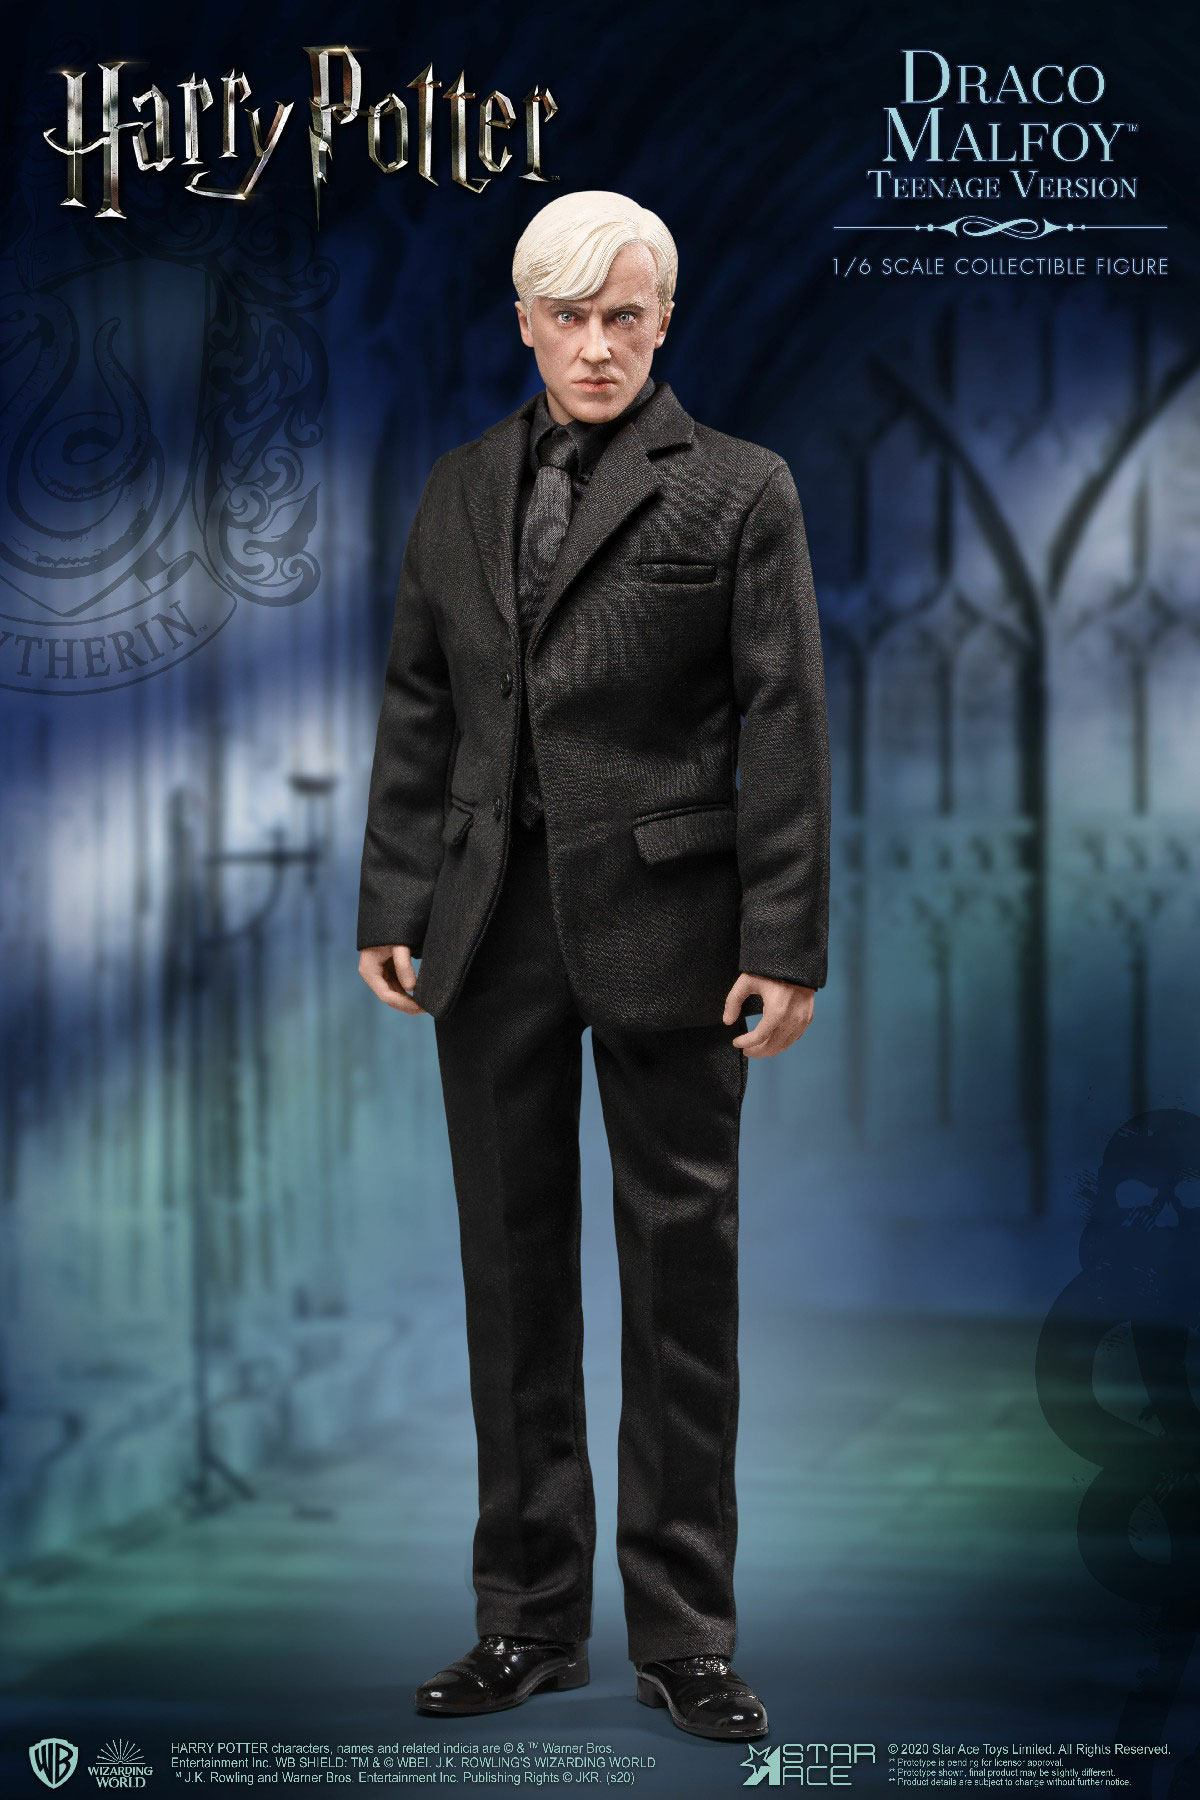 Harry Potter My Favourite Movie Action Figure 1/6 Draco Malfoy Teenager Suit Version 26 cm